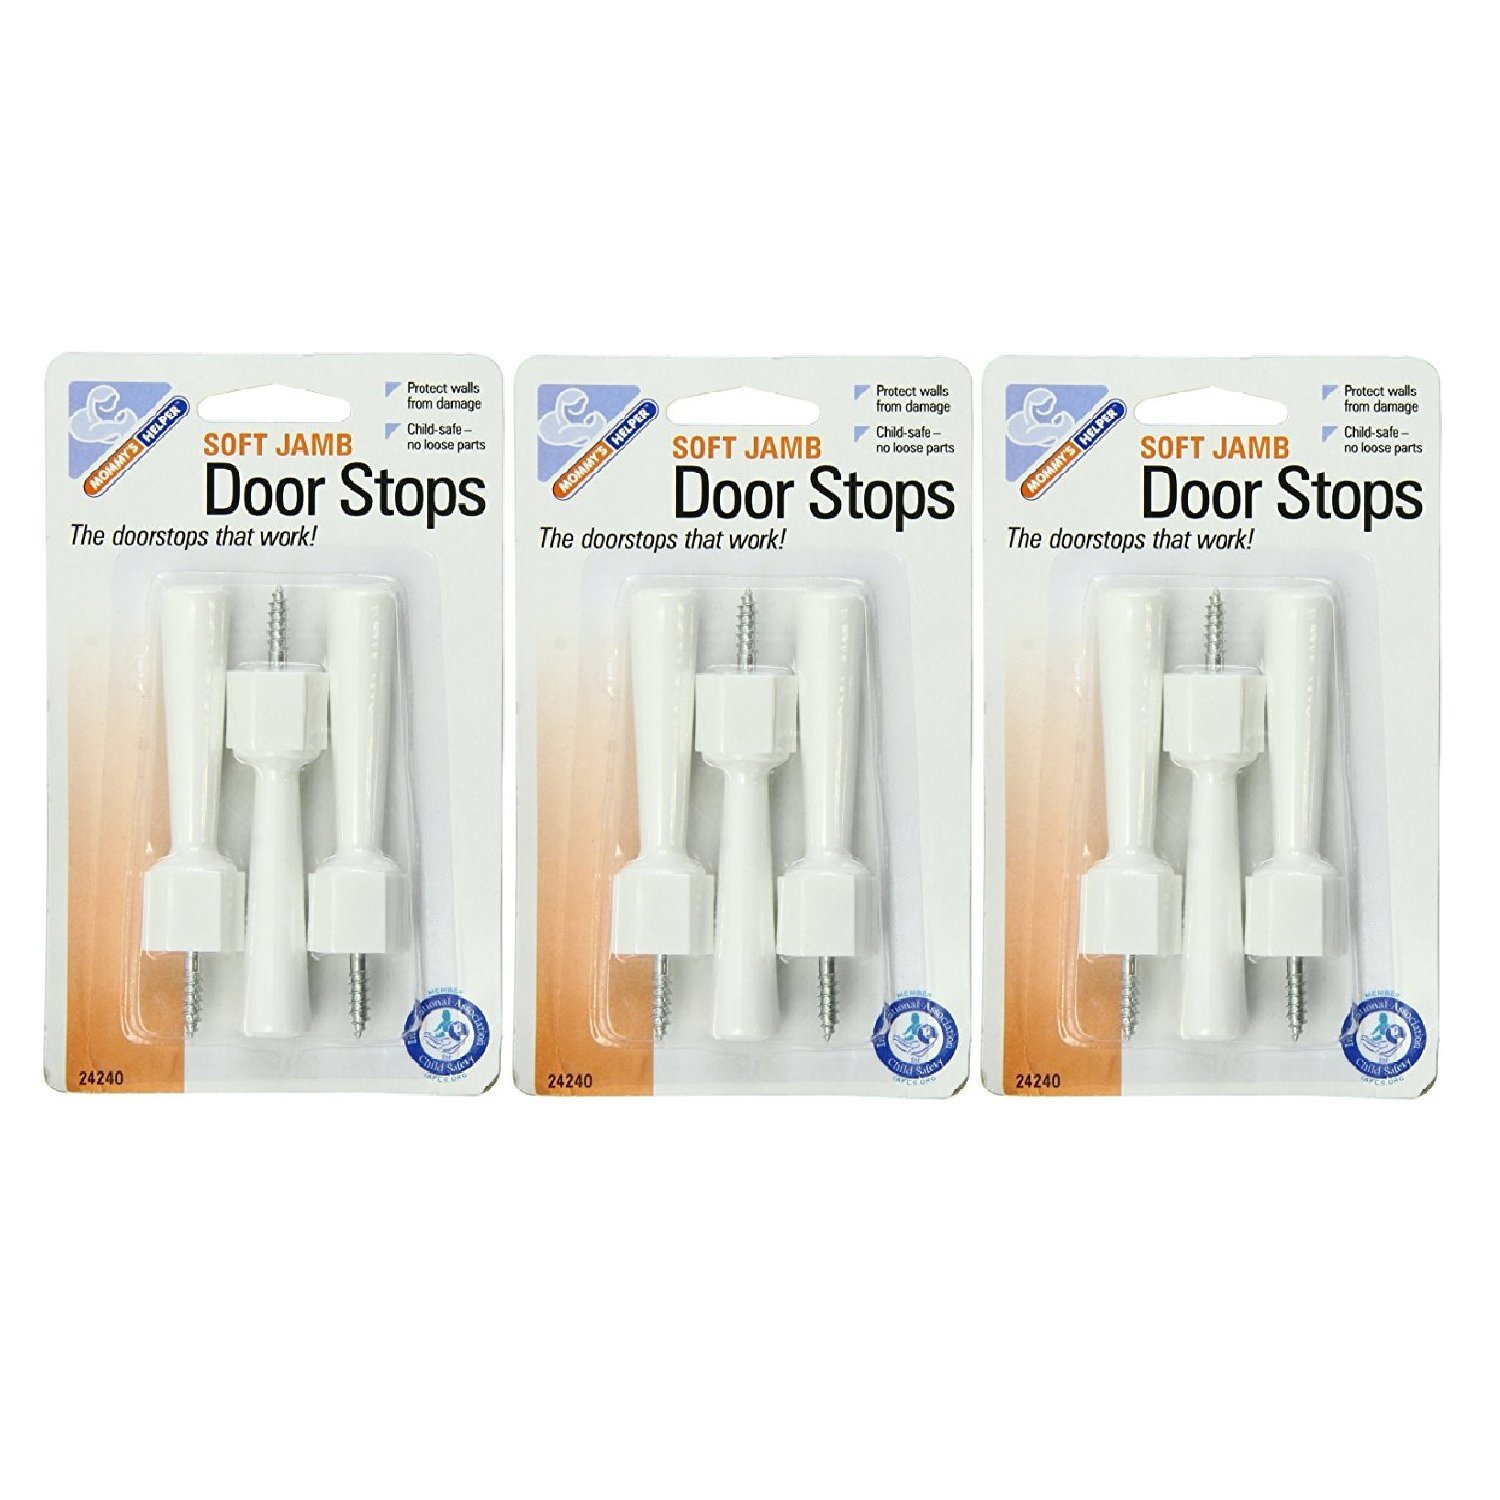 Mommys Helper Soft Jamb Door Stops Blister, White - 3 Packs Of 3 Count = 9 Count